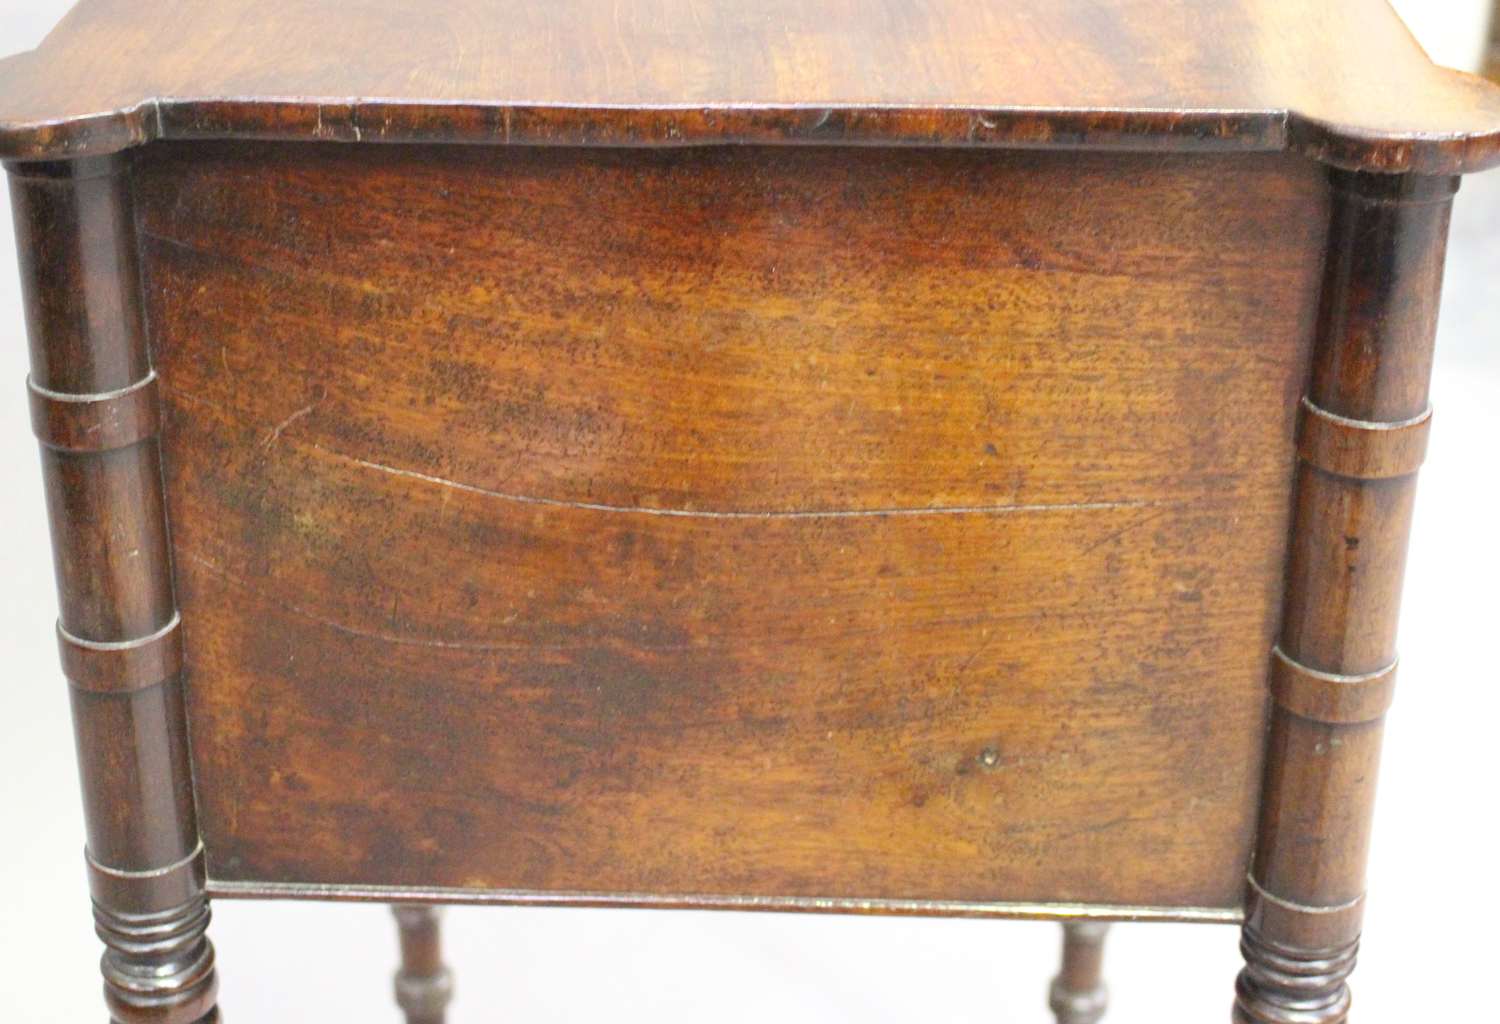 A George IV figured mahogany side table with projecting corners, the two drawers with bone handles - Image 5 of 8